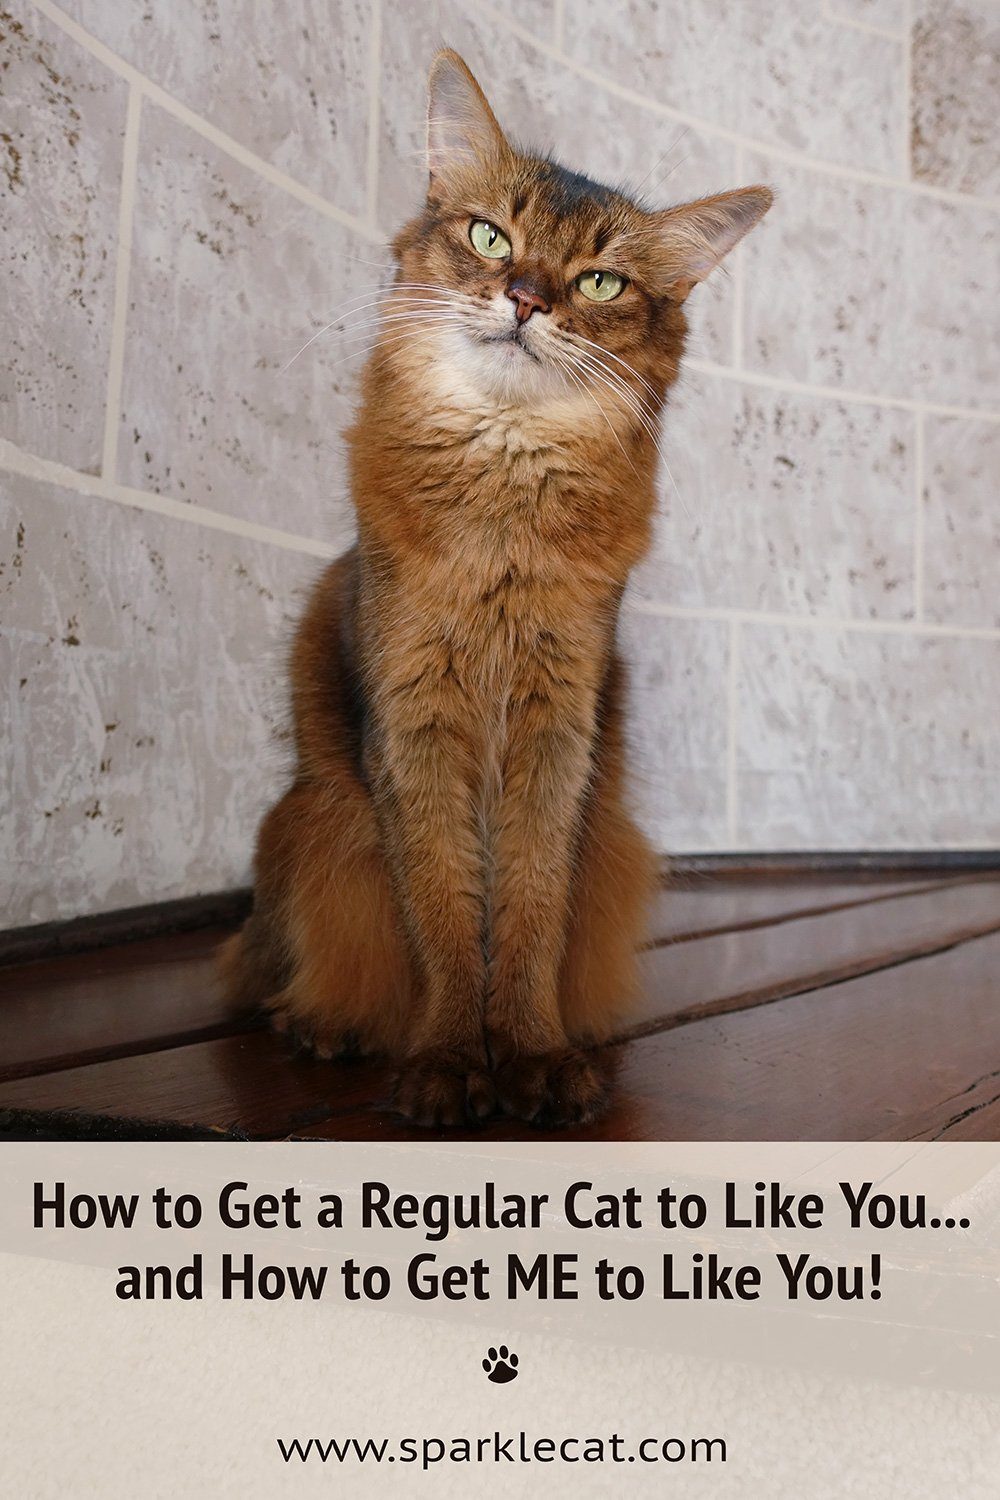 How to Make Me Like You... And How to Make a Regular Cat Like You